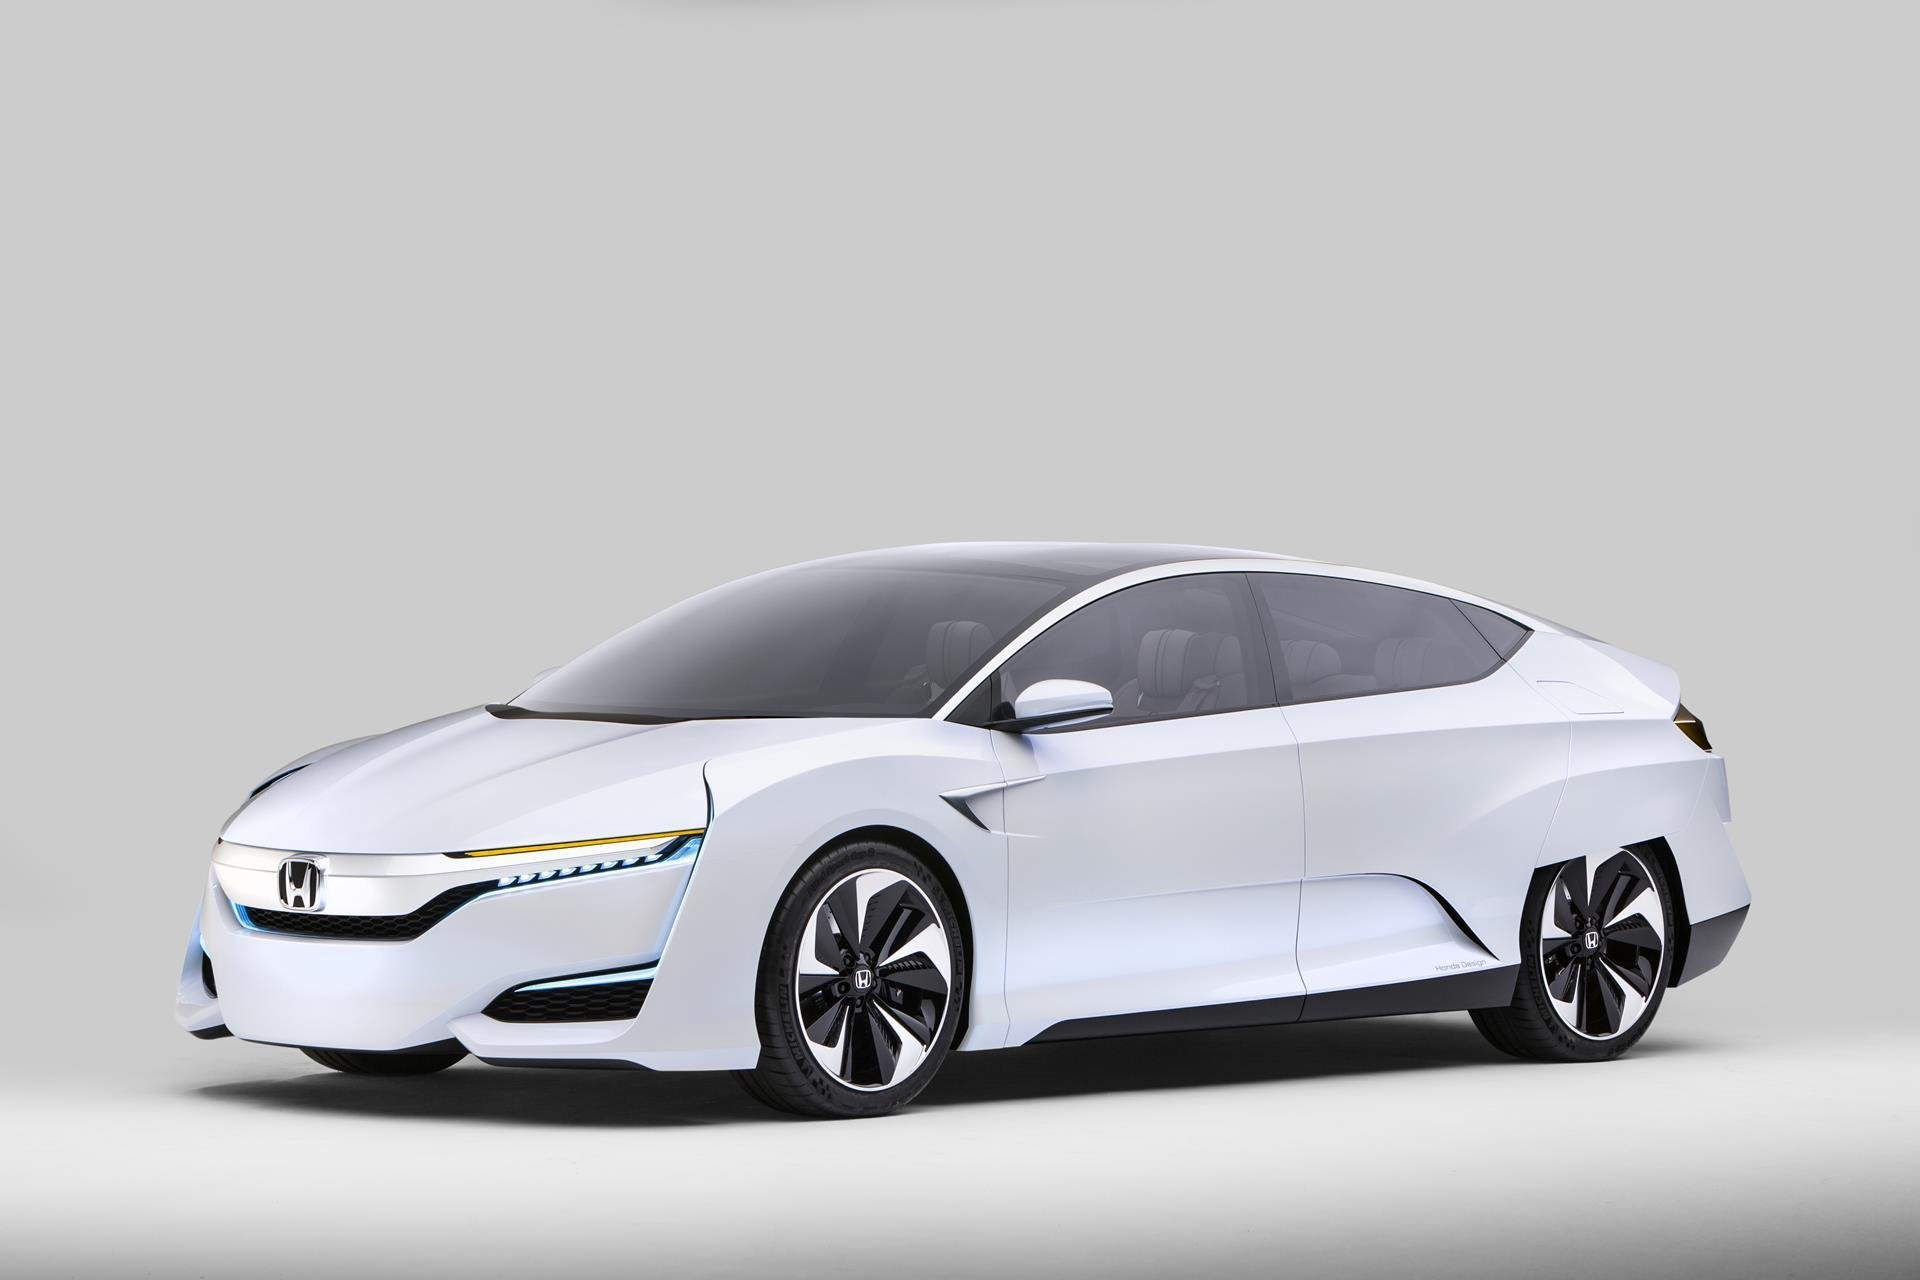 New 2016 Honda Clarity Fuel Cell News And Information On This Month